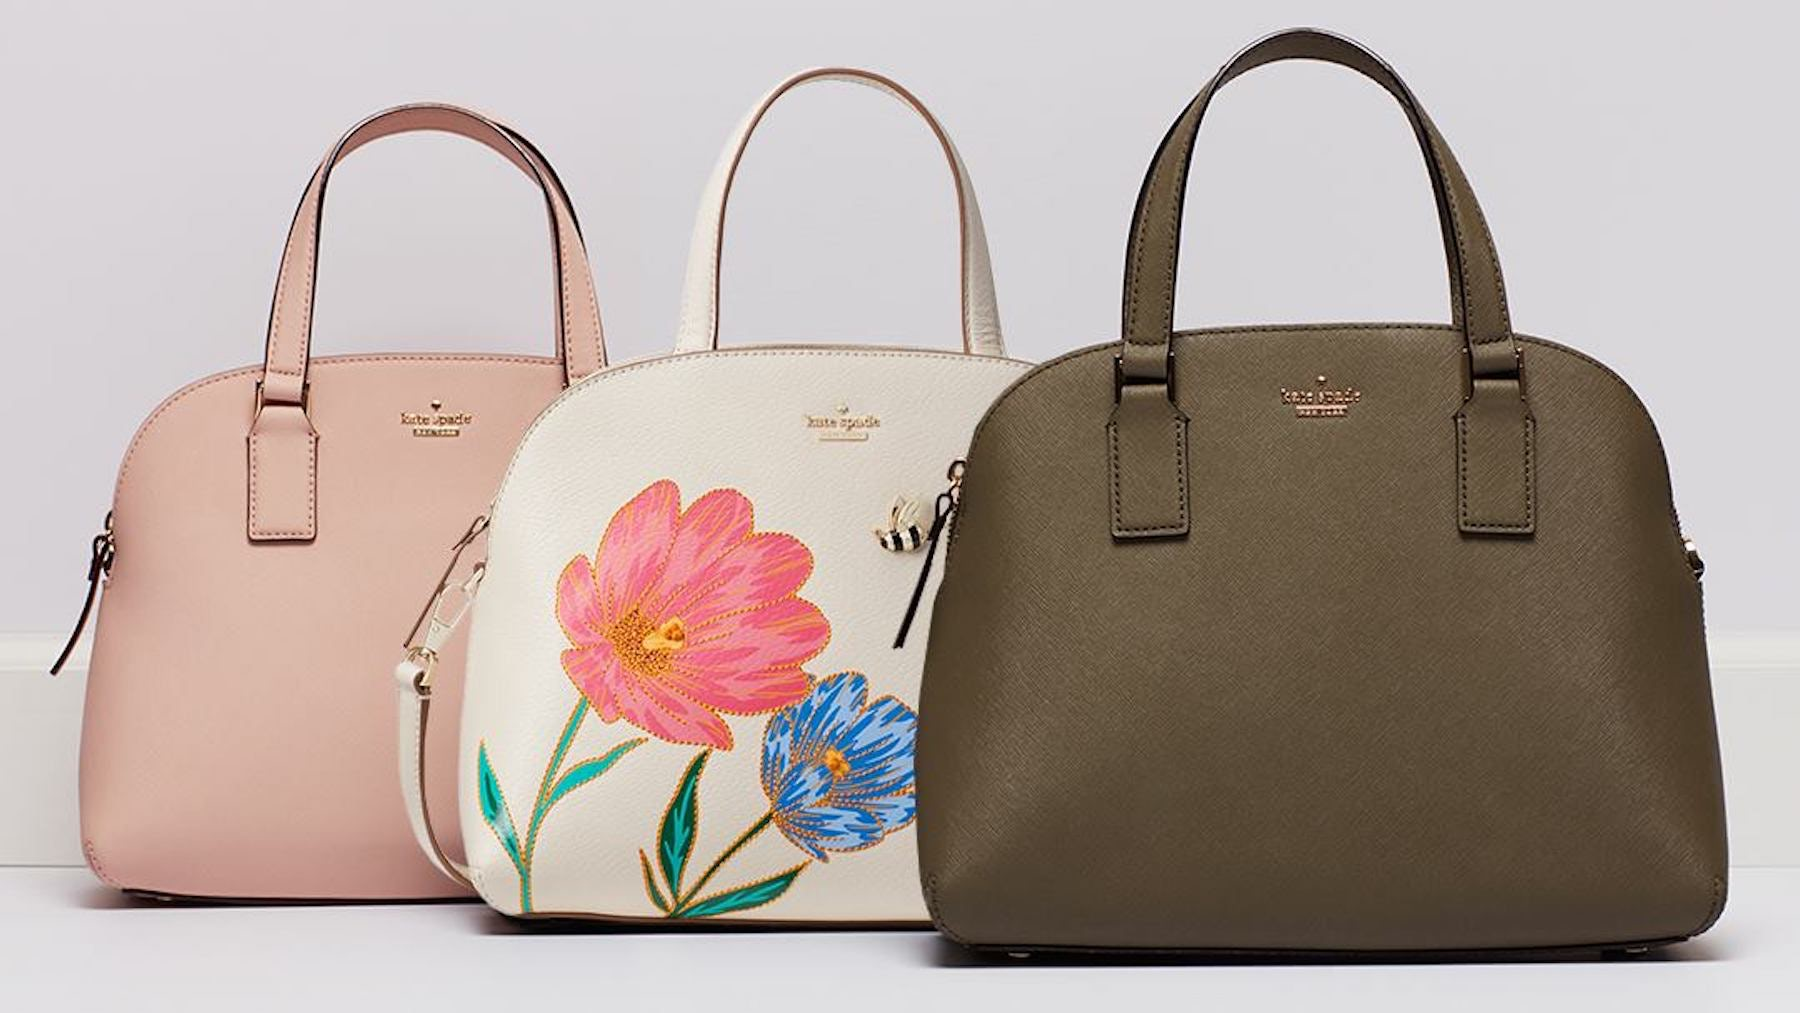 Tapestry Beats Sales Estimates On Demand For Kate Spade Bags News